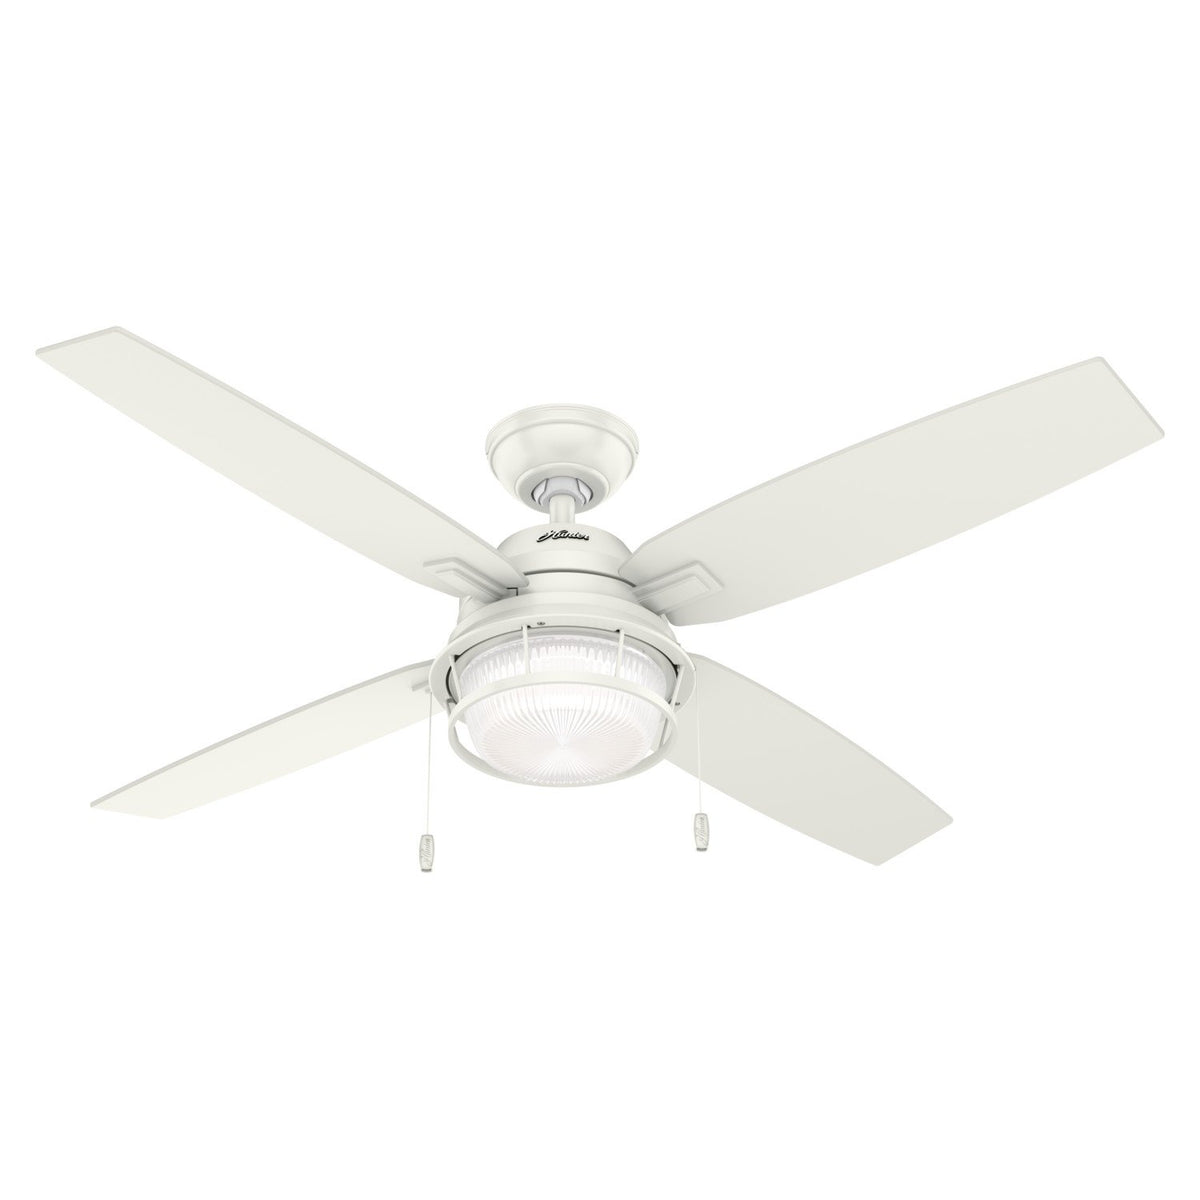 Ocala Outdoor With Led Light 52 Inch Hunter Fan